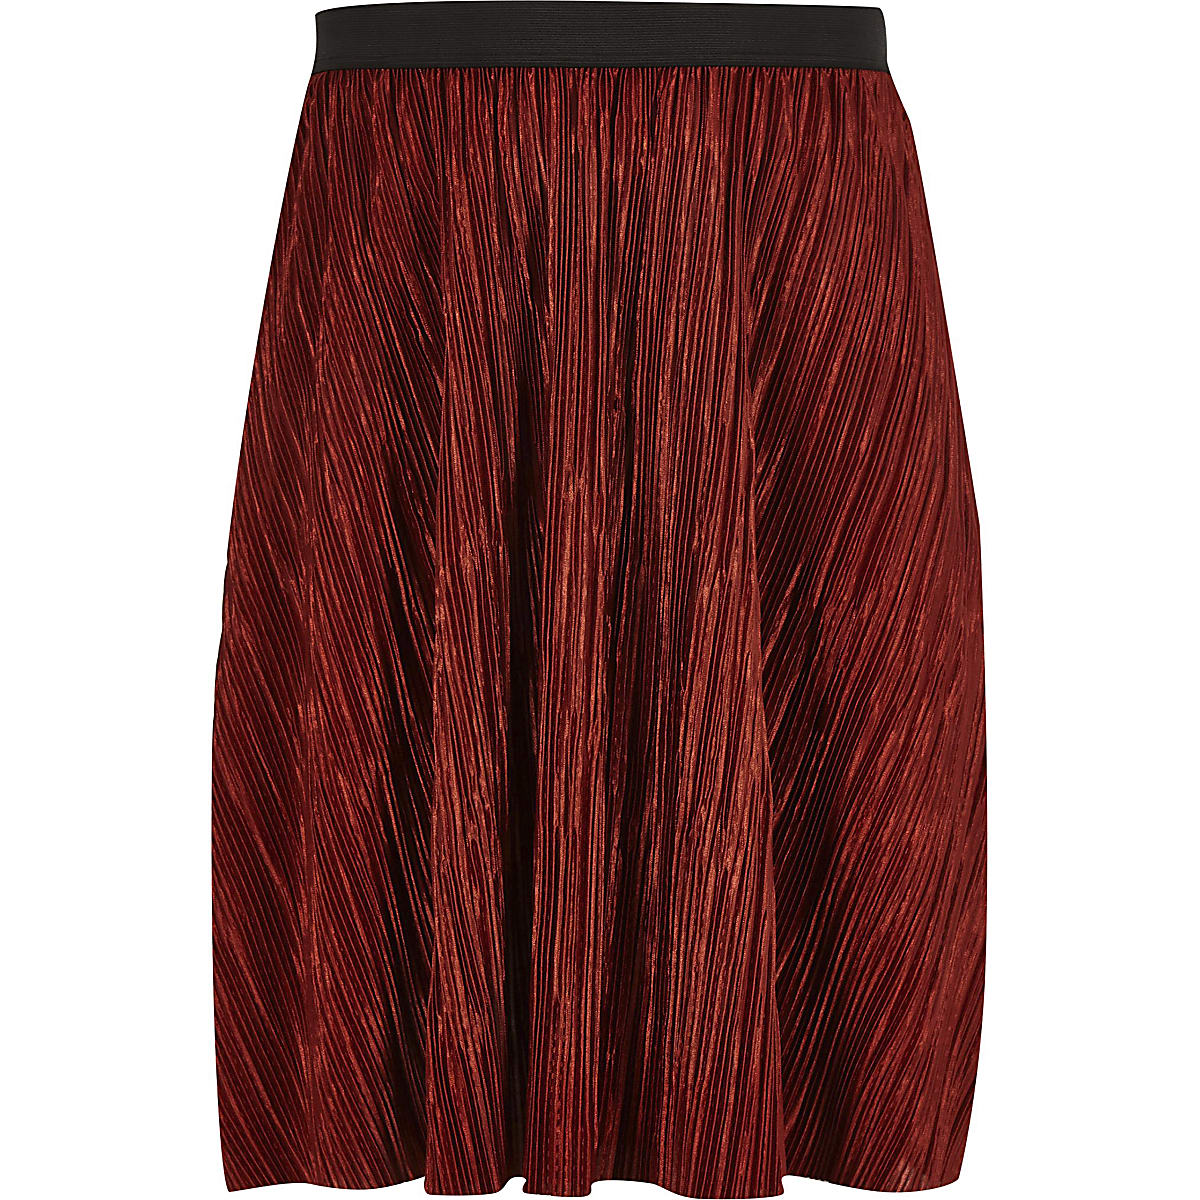 Girls rust plisse skirt